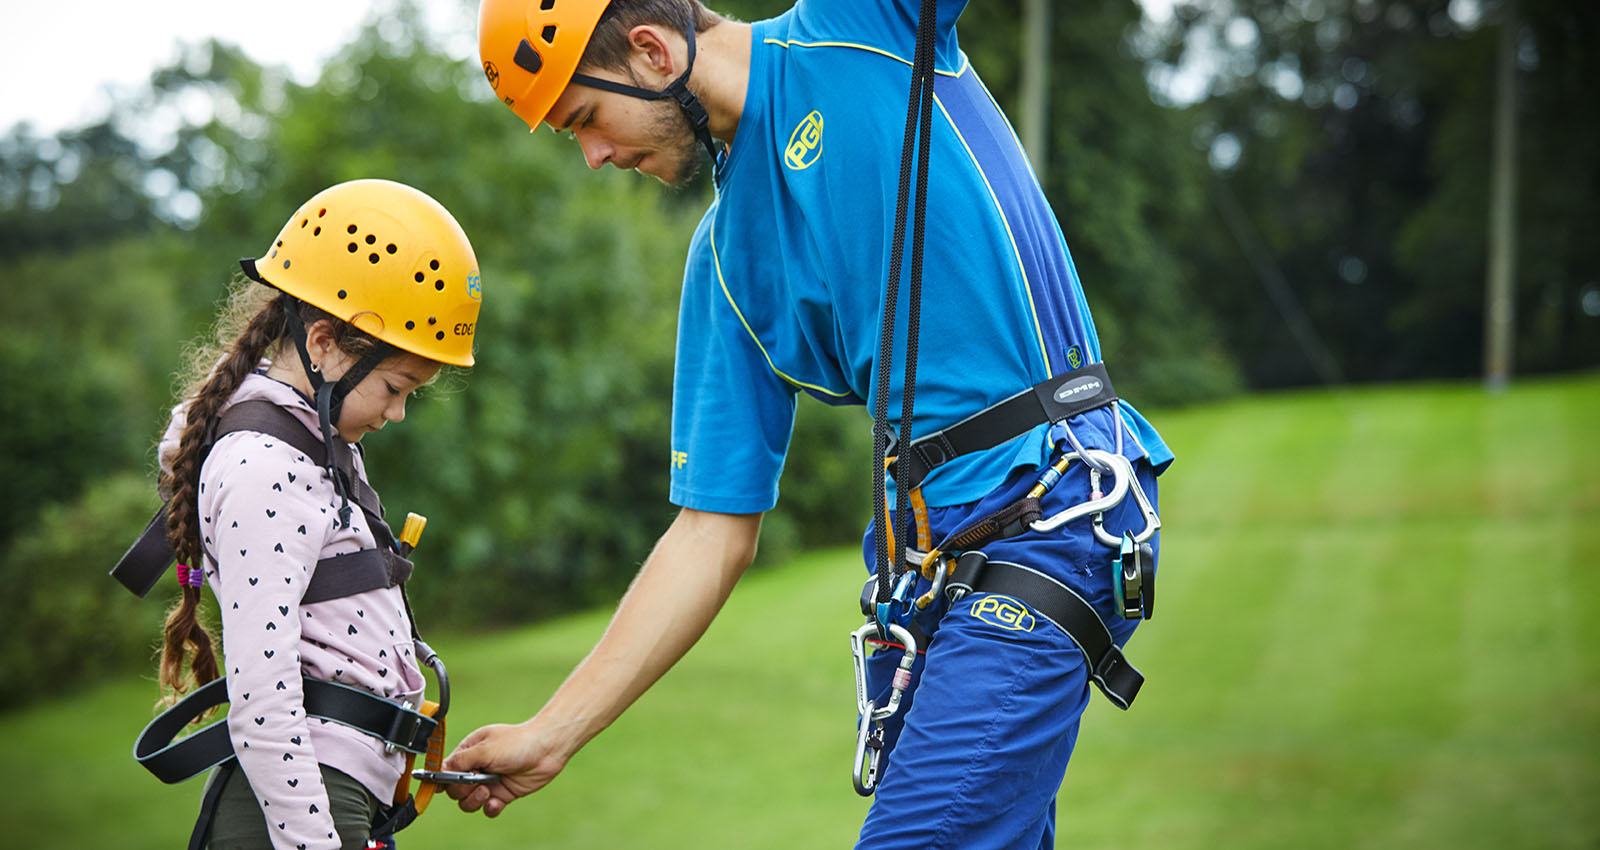 PGL Adventure Holidays - Multi Activity Holidays across the UK and France - 4 night Multi Activity mini breaks - Tuesday-Saturday